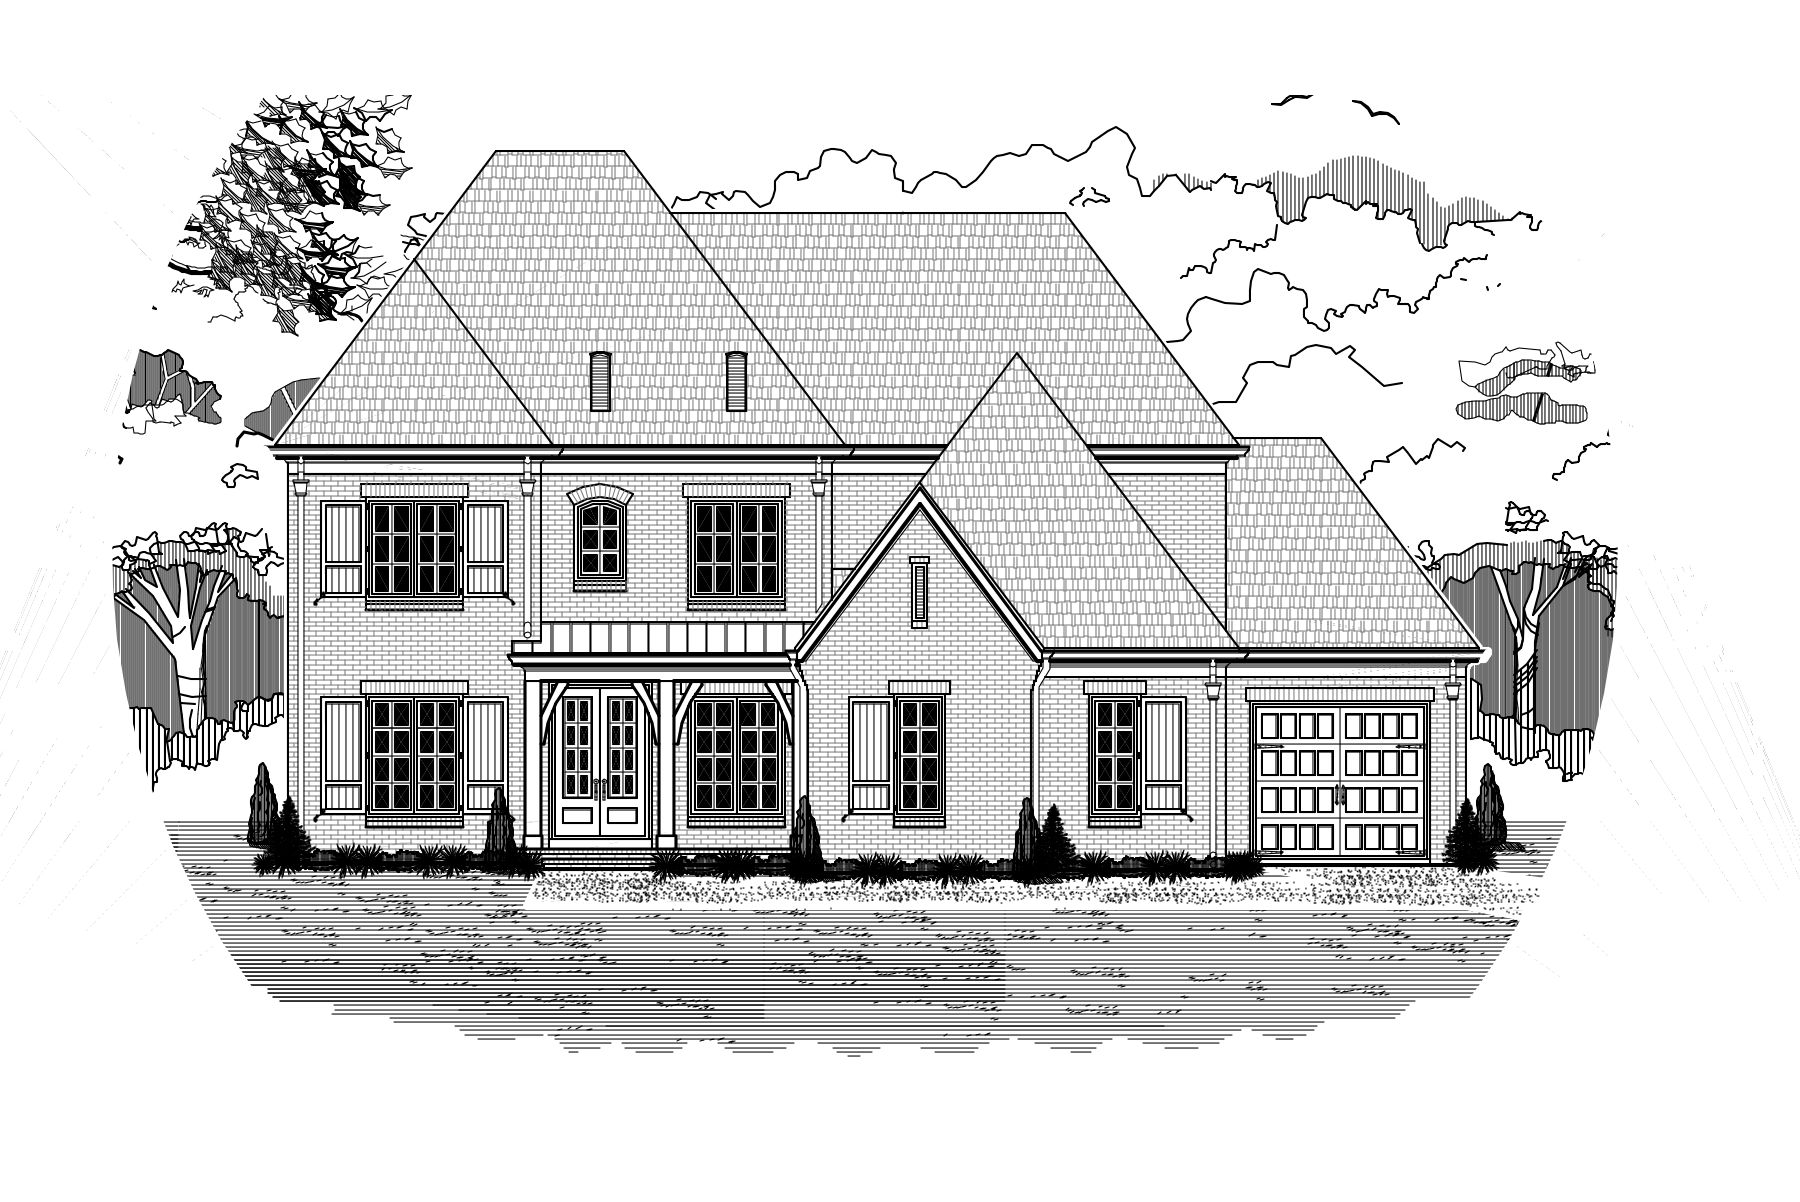 New Home Glenwood Plan